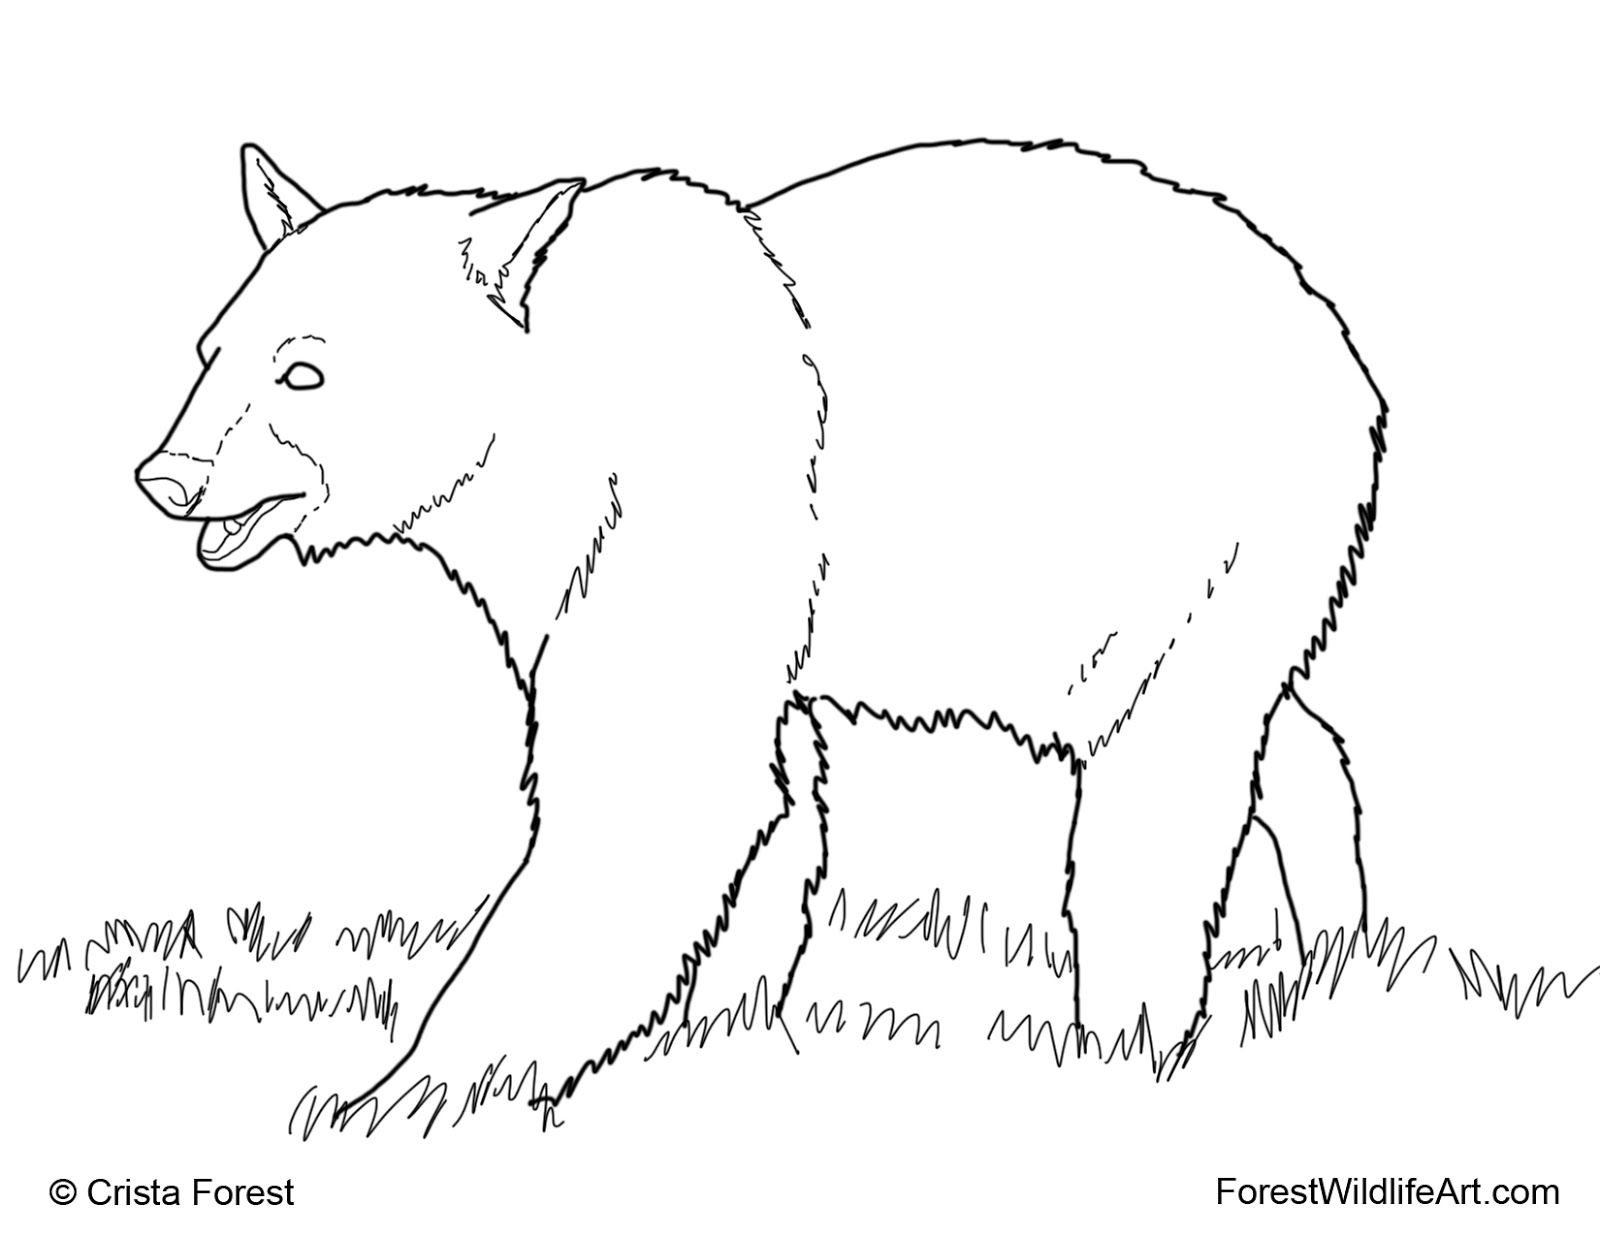 Coloring Pages Of A Black Bear. Learn Forest Animals Coloring Pages Grizzly Bear  Proficiency free images or bears to paint Wildlife Art Book